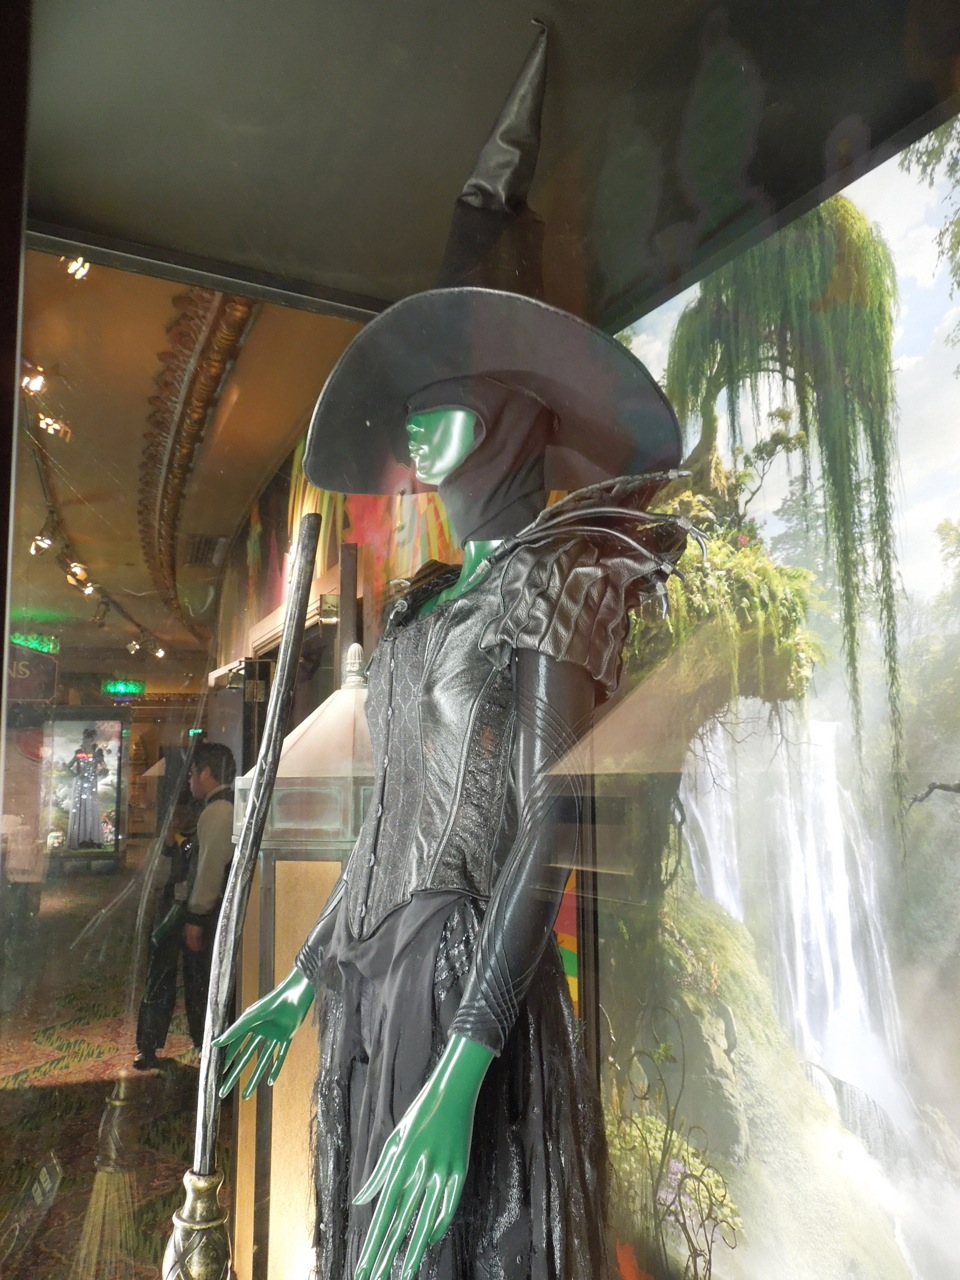 Hollywood Movie Costumes and Props: Wicked Witch costume worn by ...